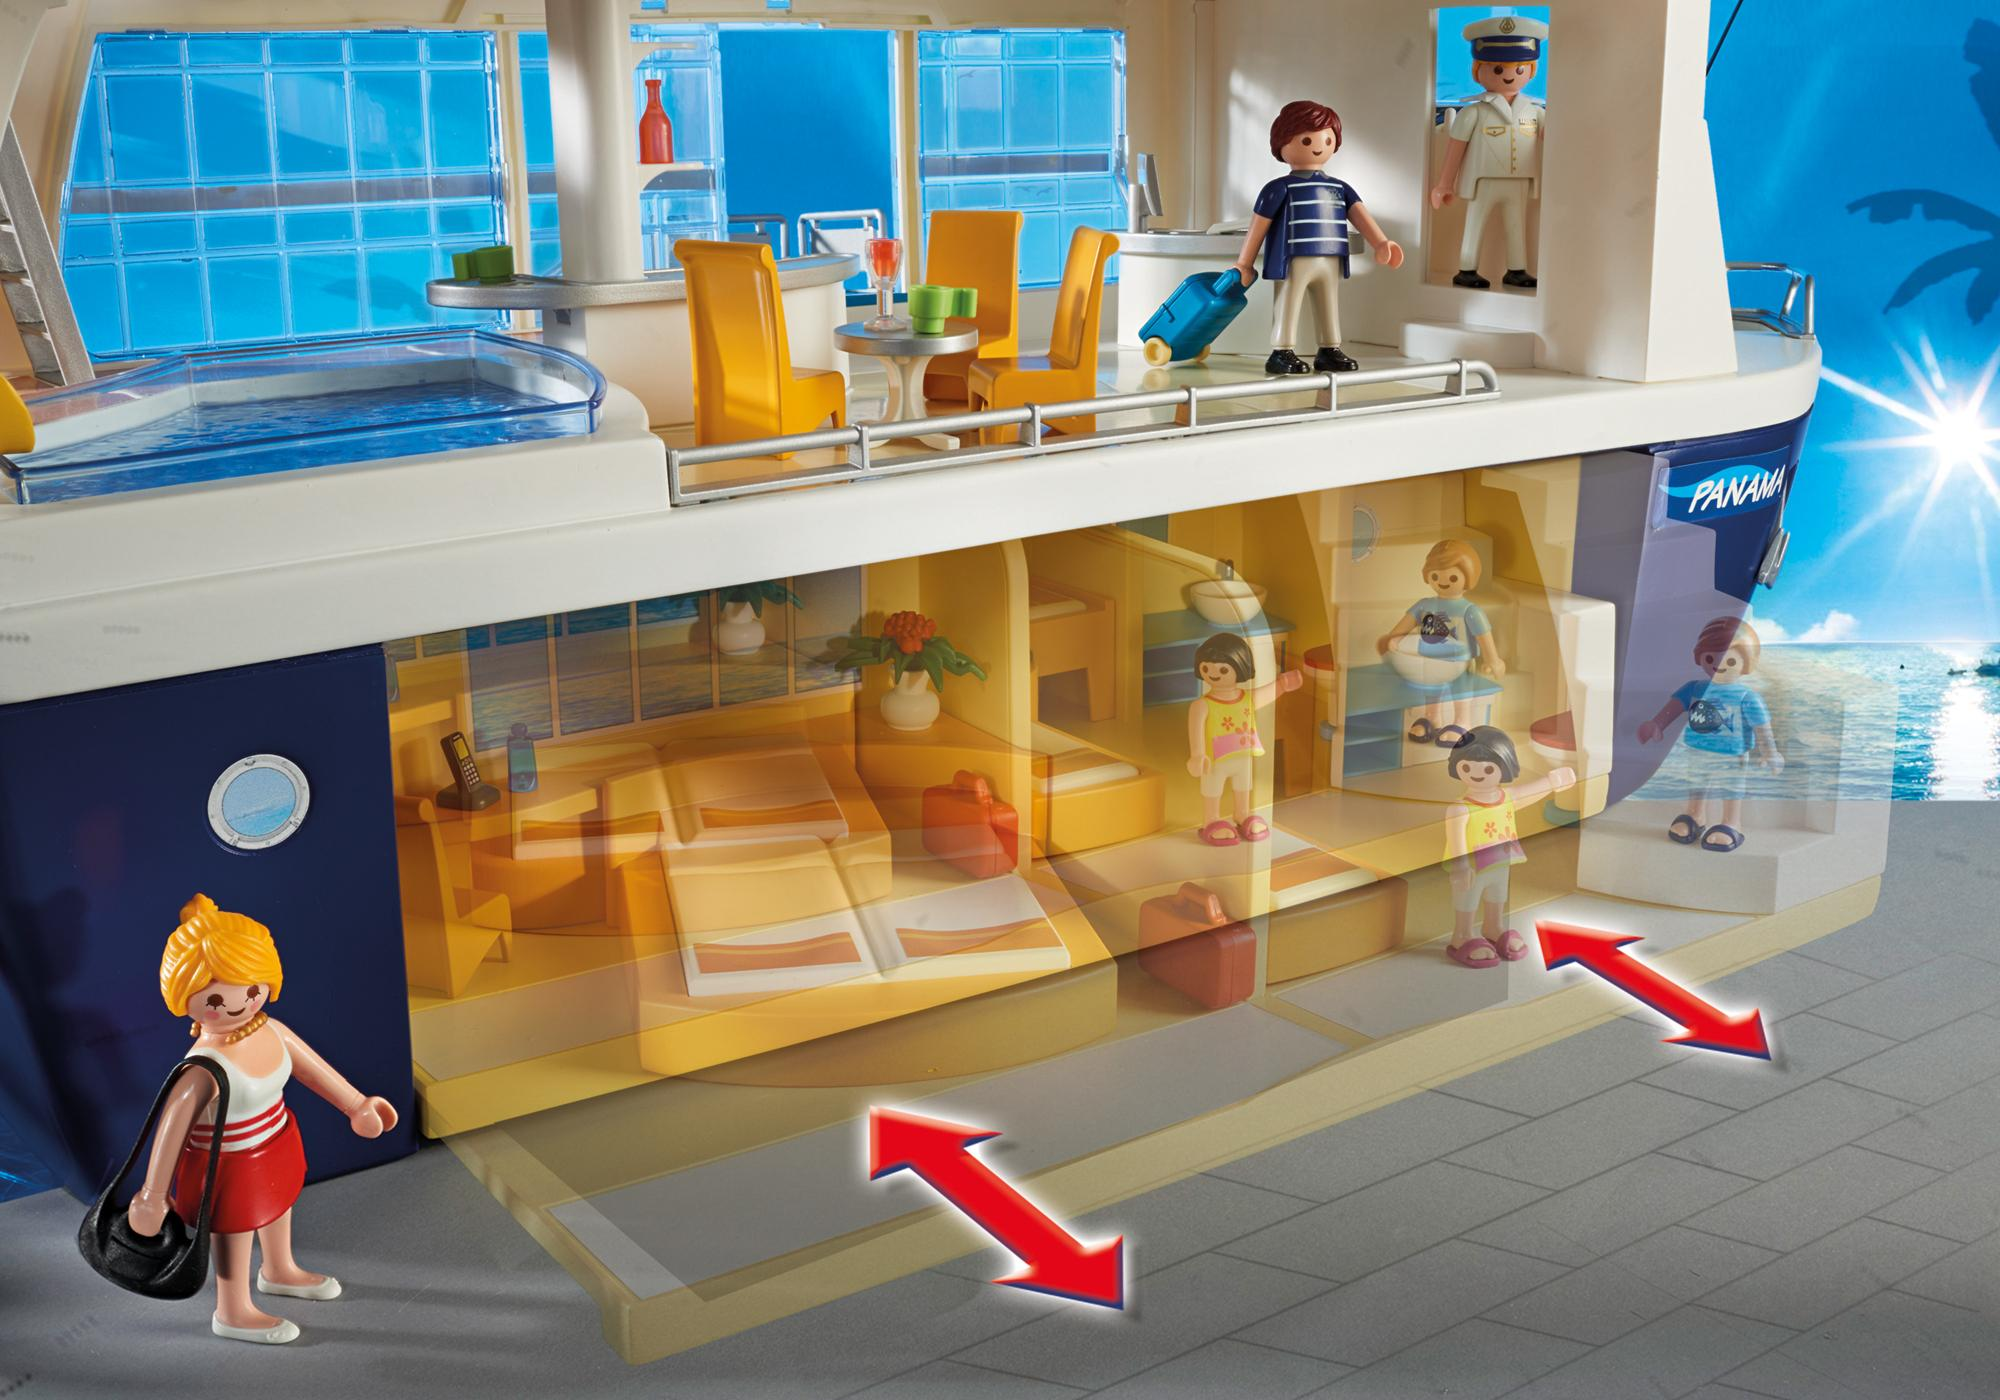 http://media.playmobil.com/i/playmobil/6978_product_extra1